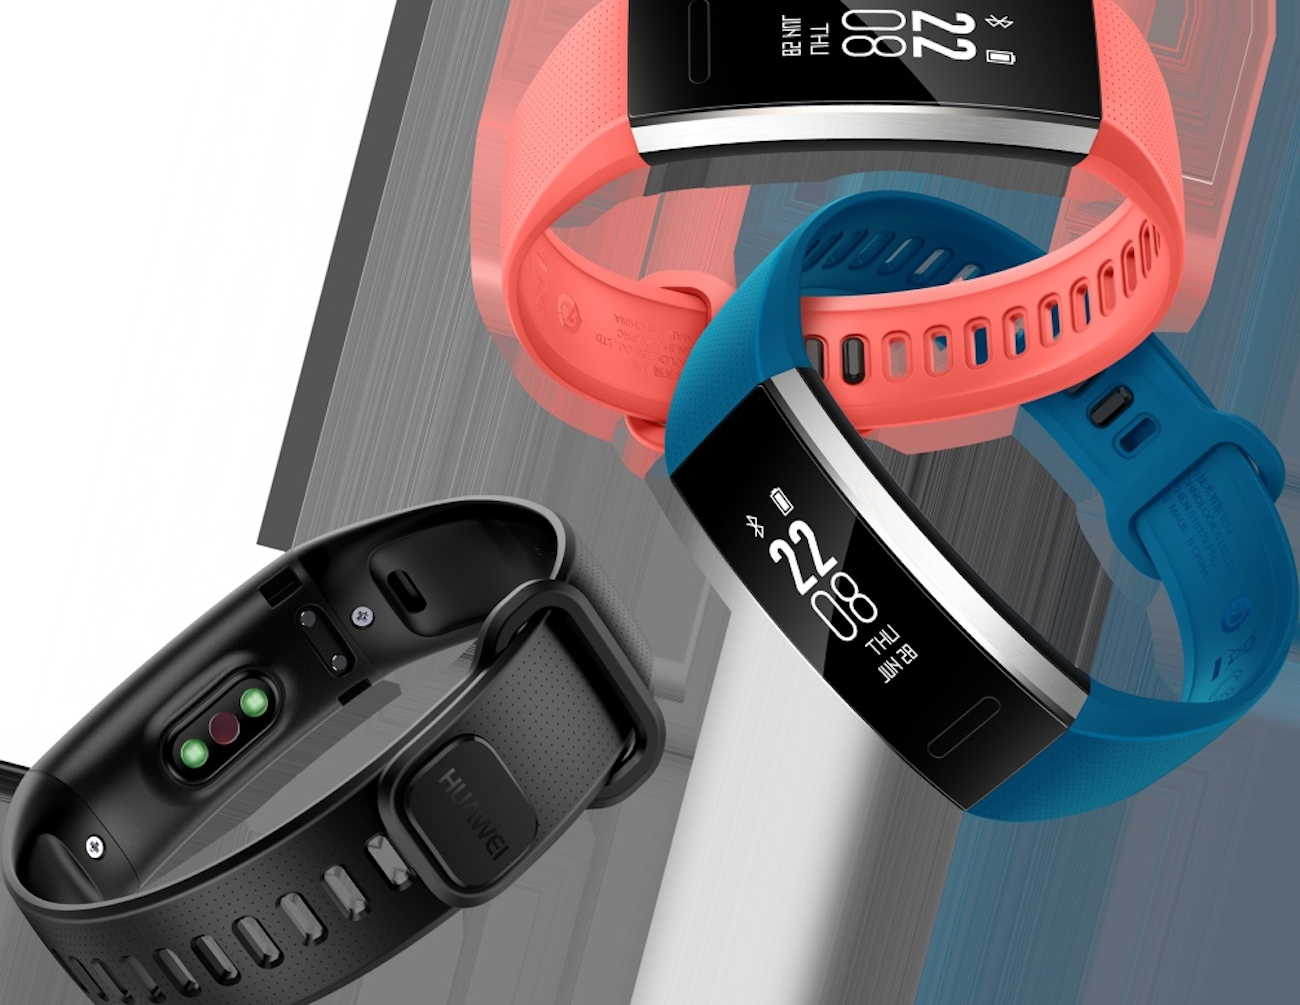 Huawei Band 2 Series Smart Wearables